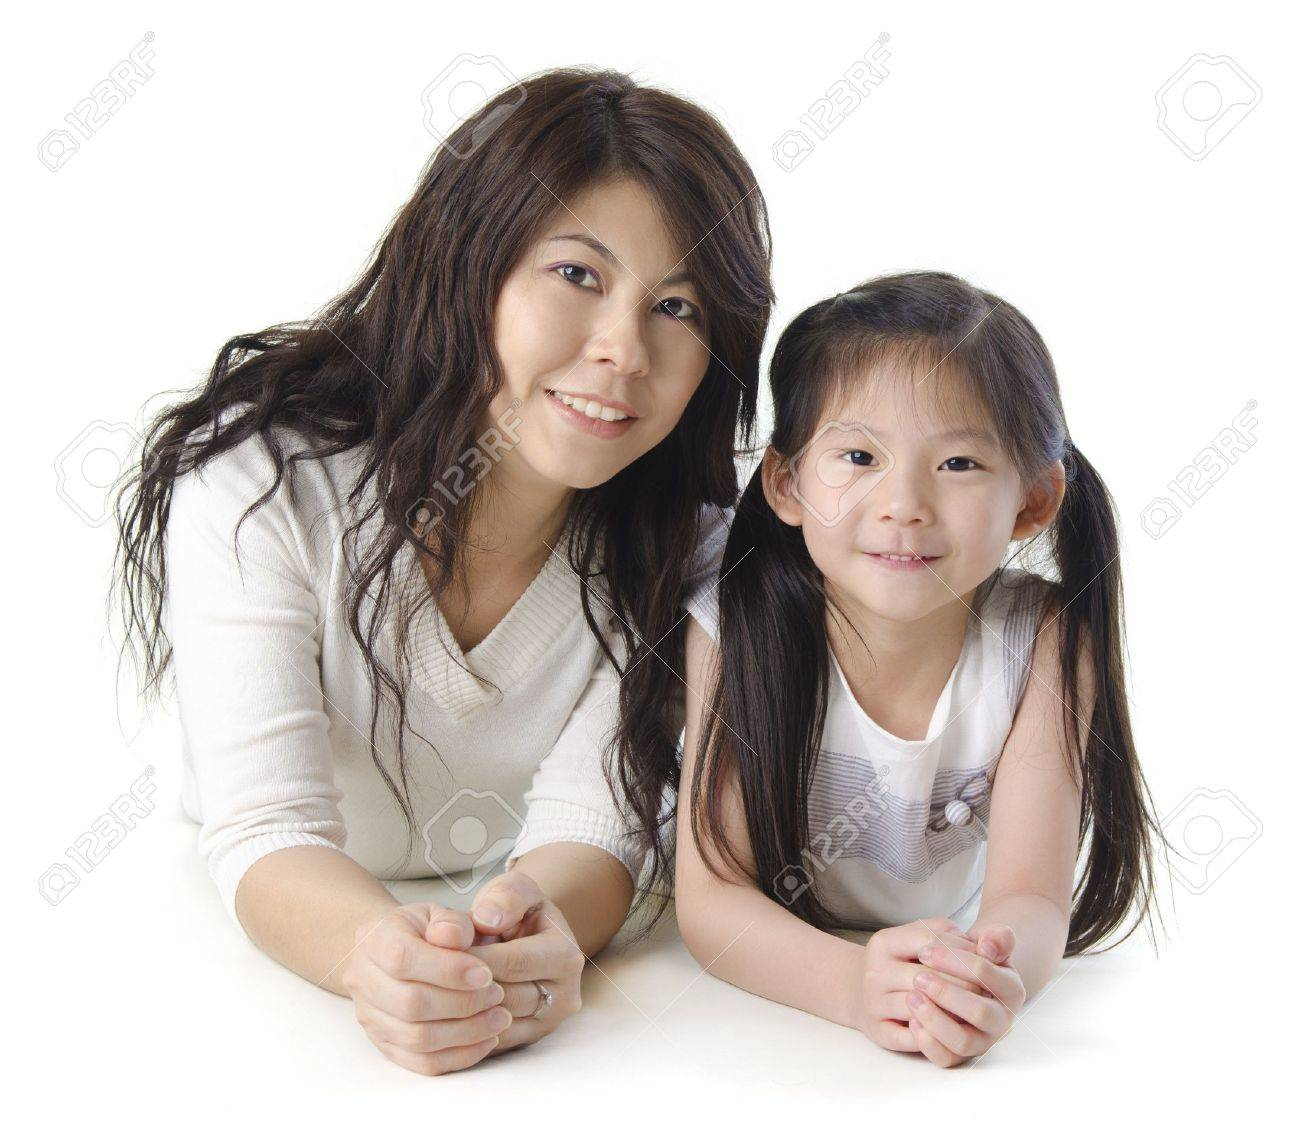 Asian mother and her daughter on white background Stock Photo - 11219177